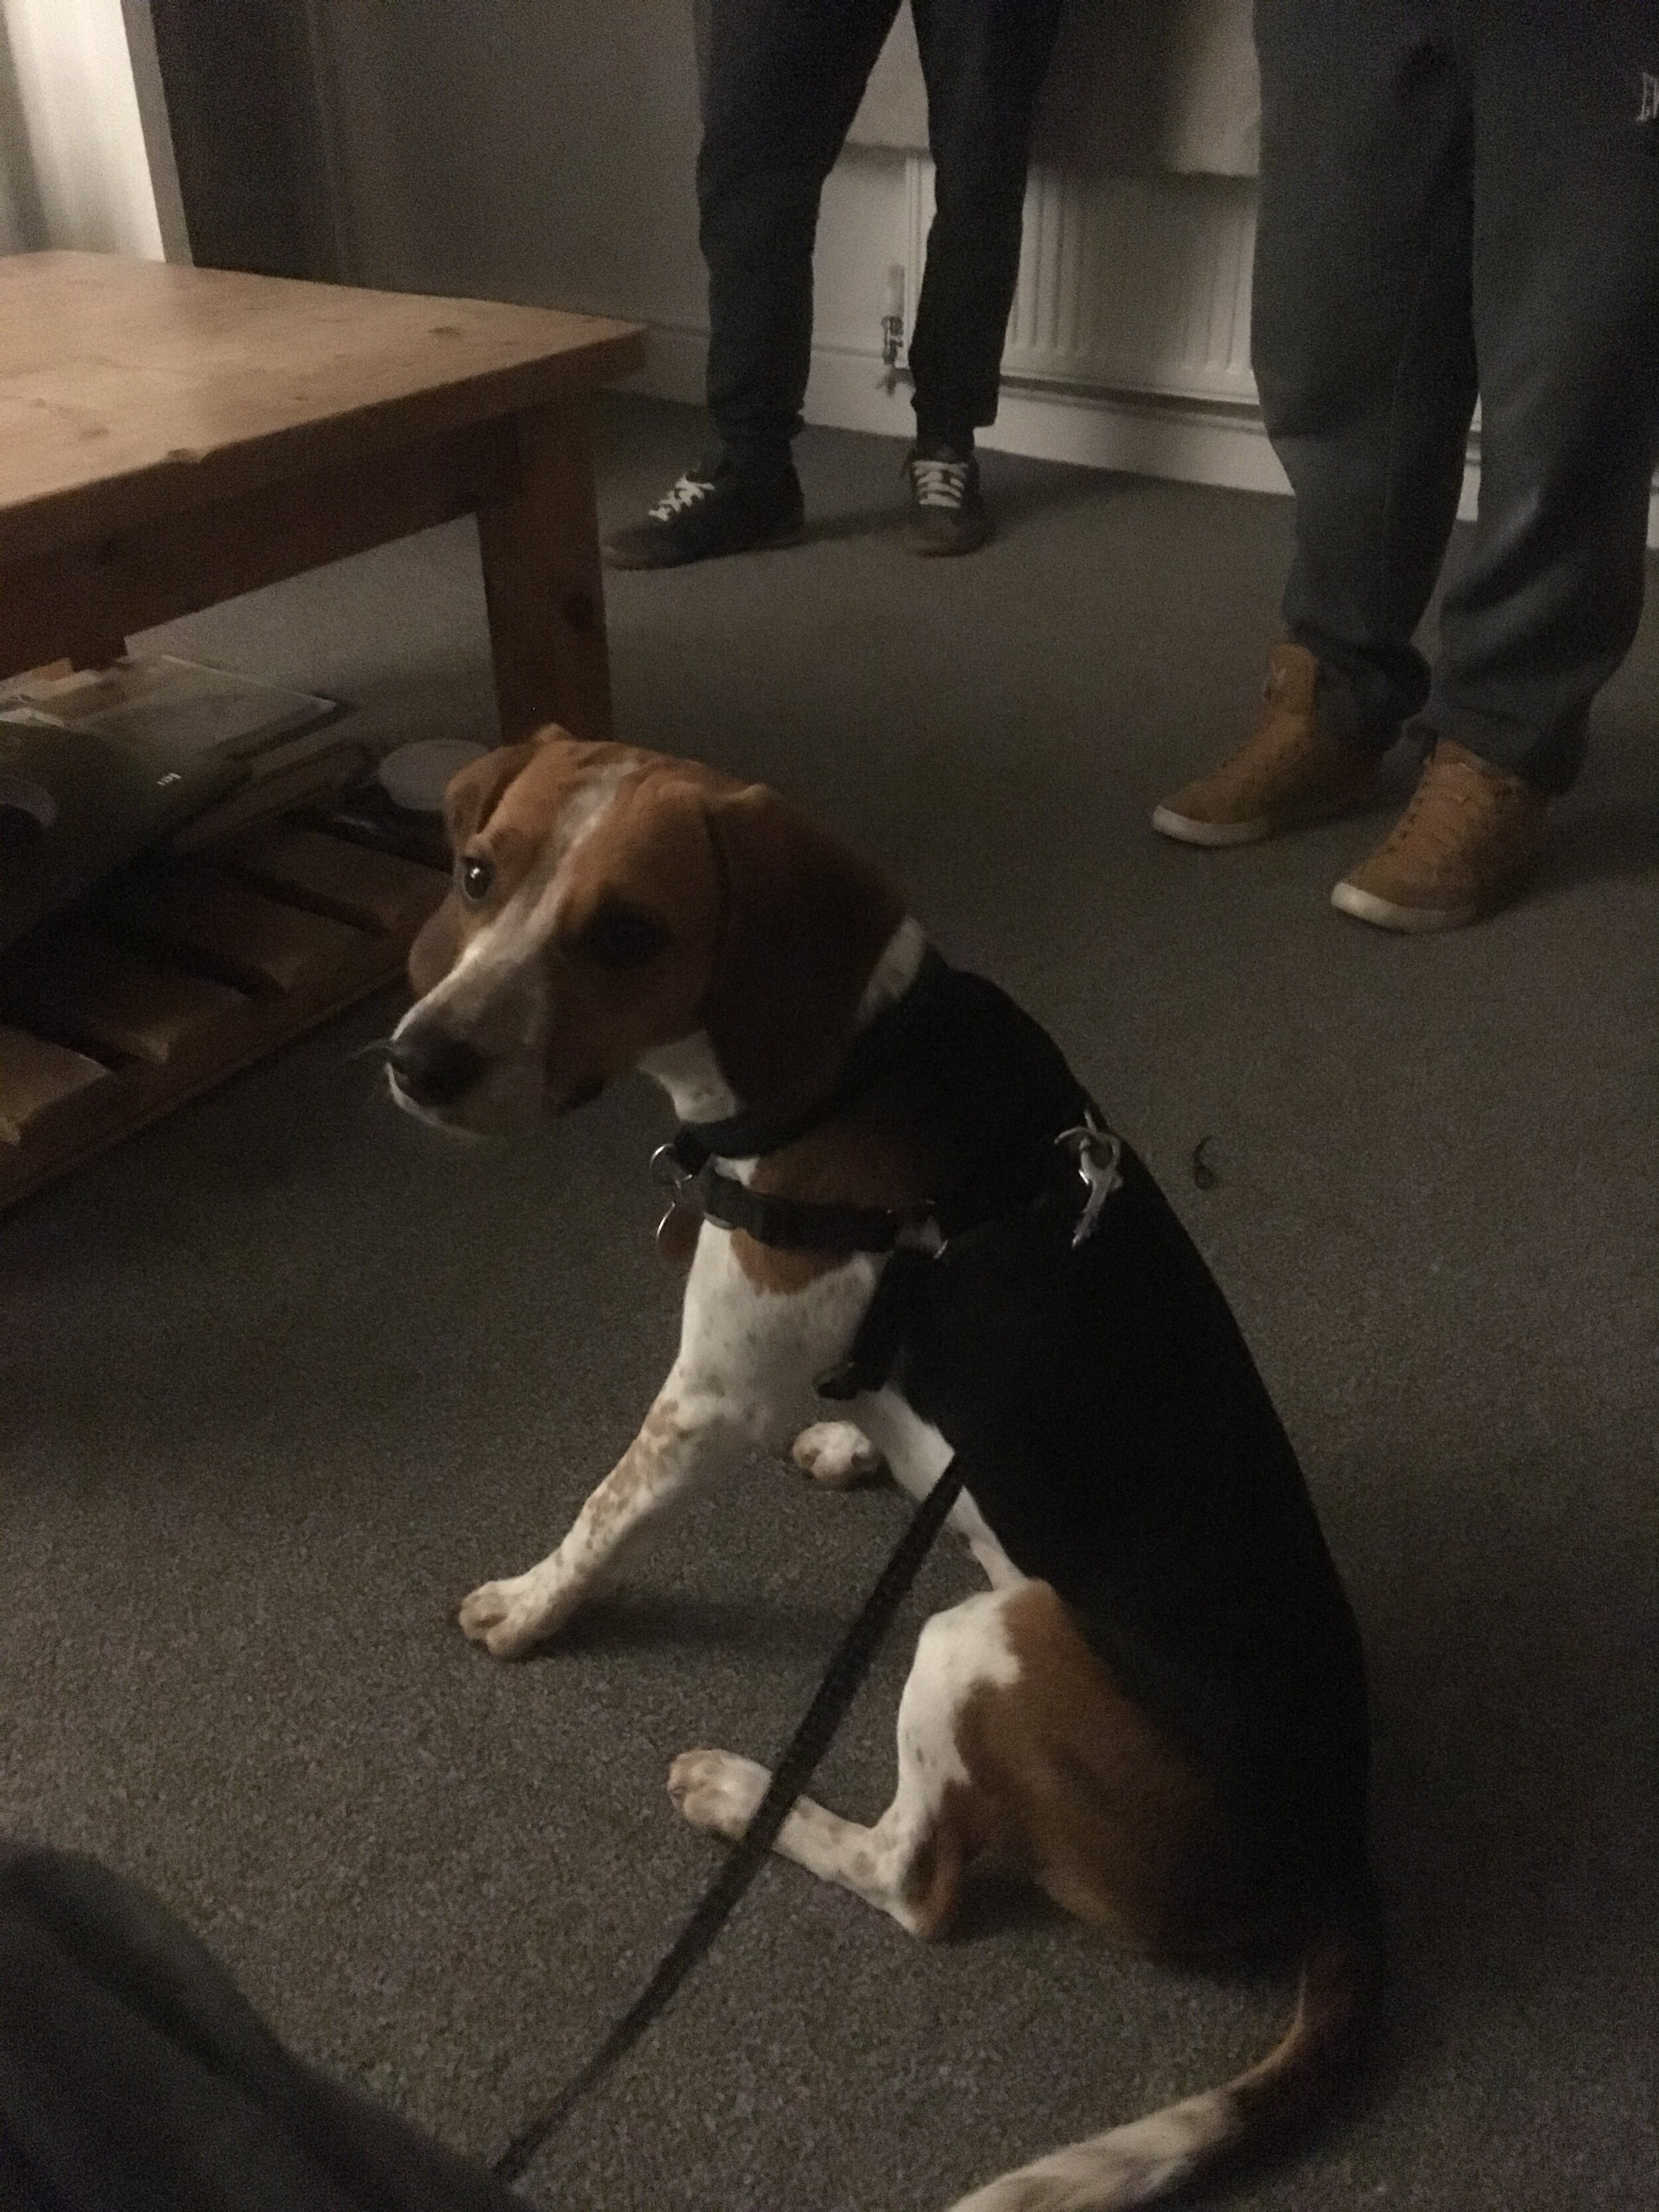 Beagle waiting to go for a walk.